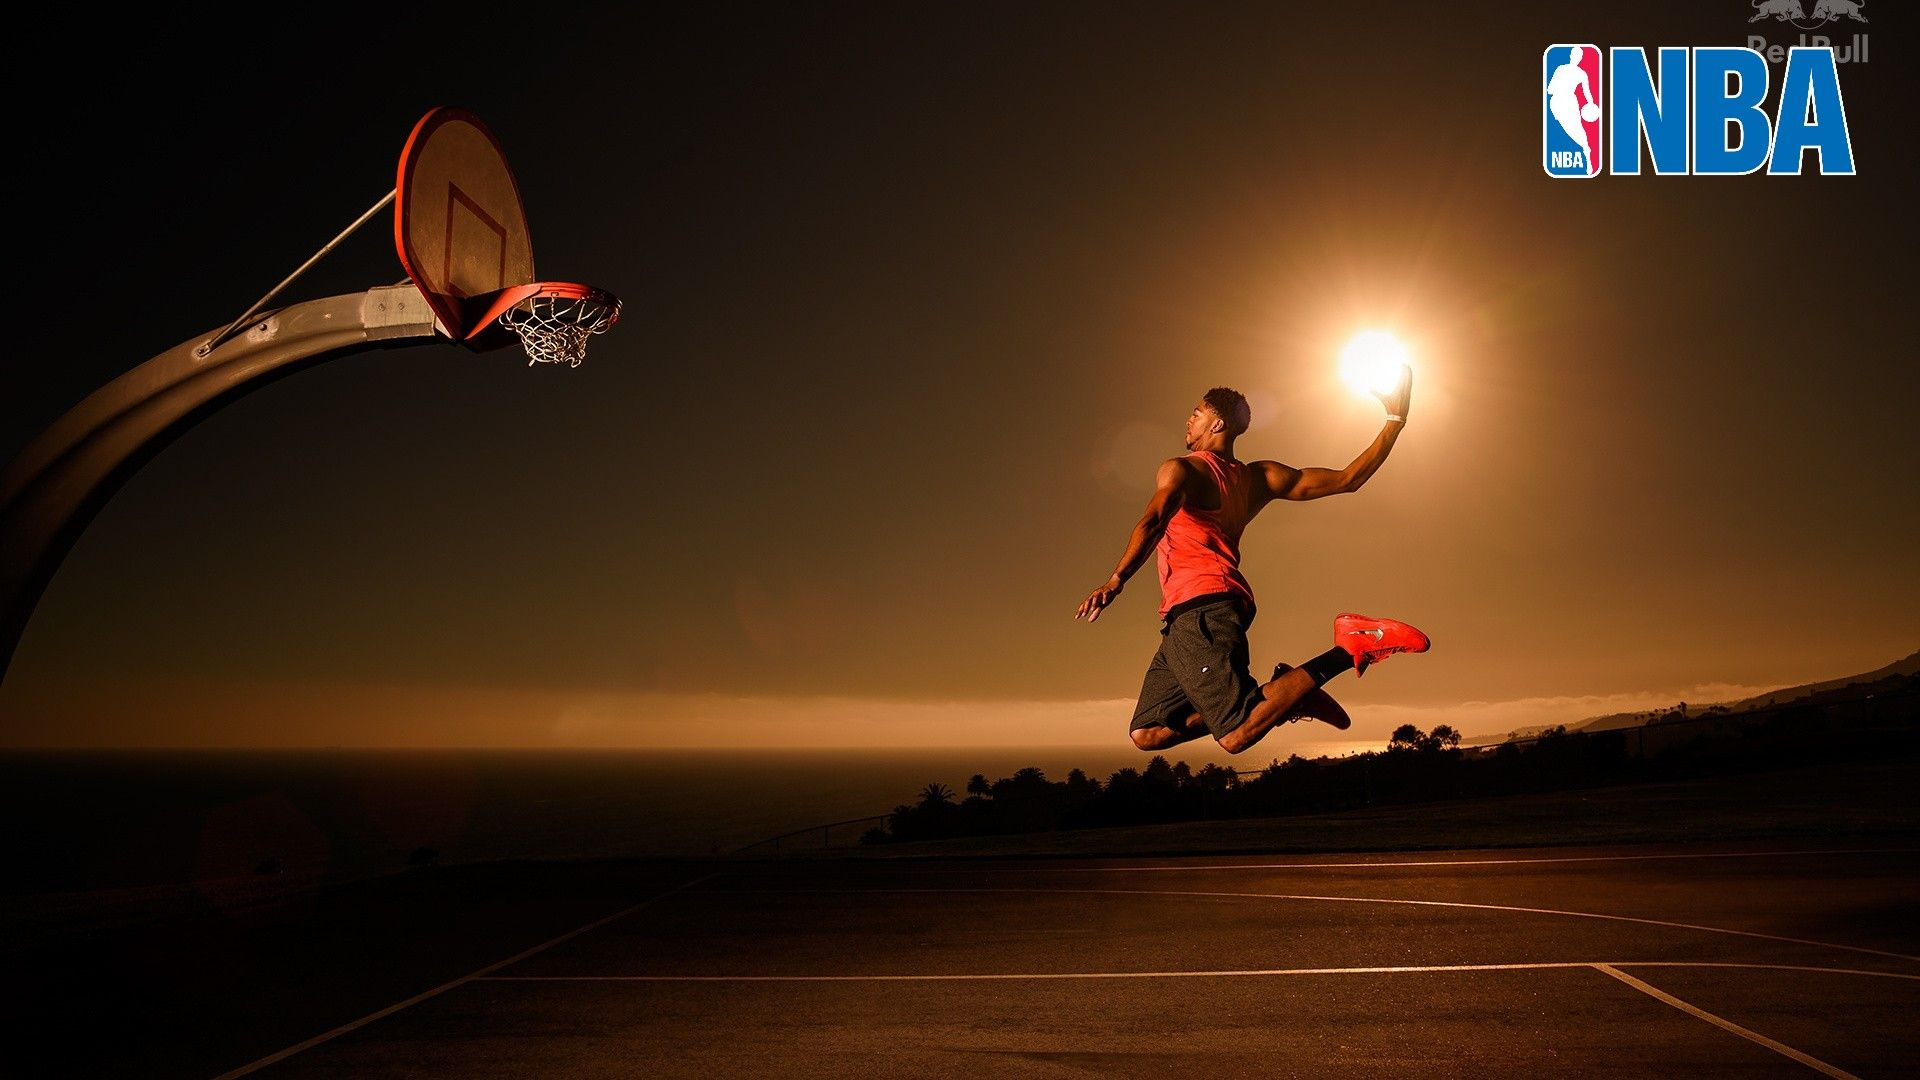 Basketball Wallpaper Best Basketball Wallpapers 2020 Sports Wallpapers Outdoor Basketball Court Basketball Pictures